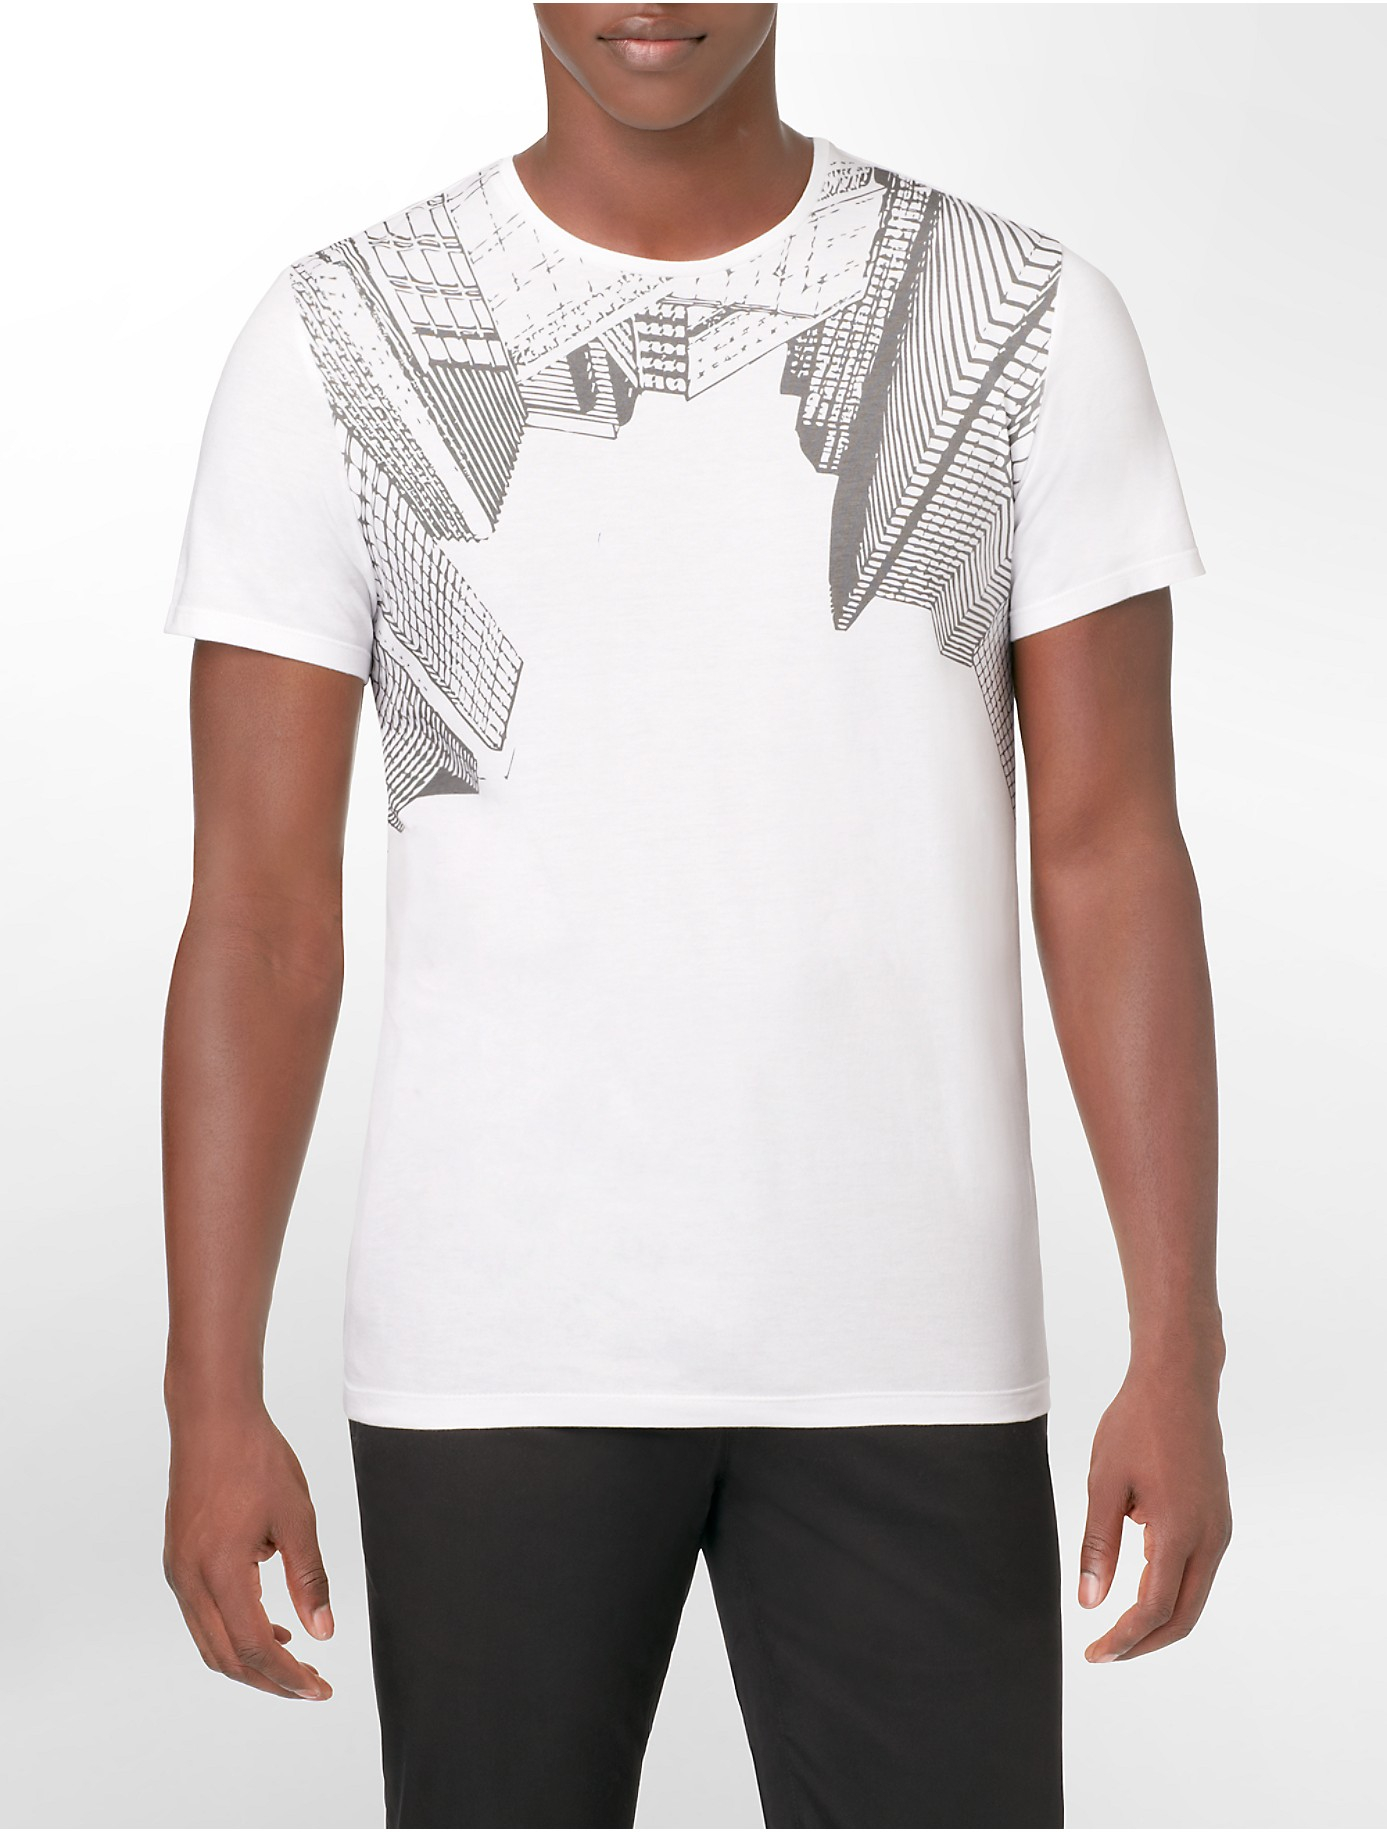 Calvin Klein White Label Ck One Slim Fit Abstract Building